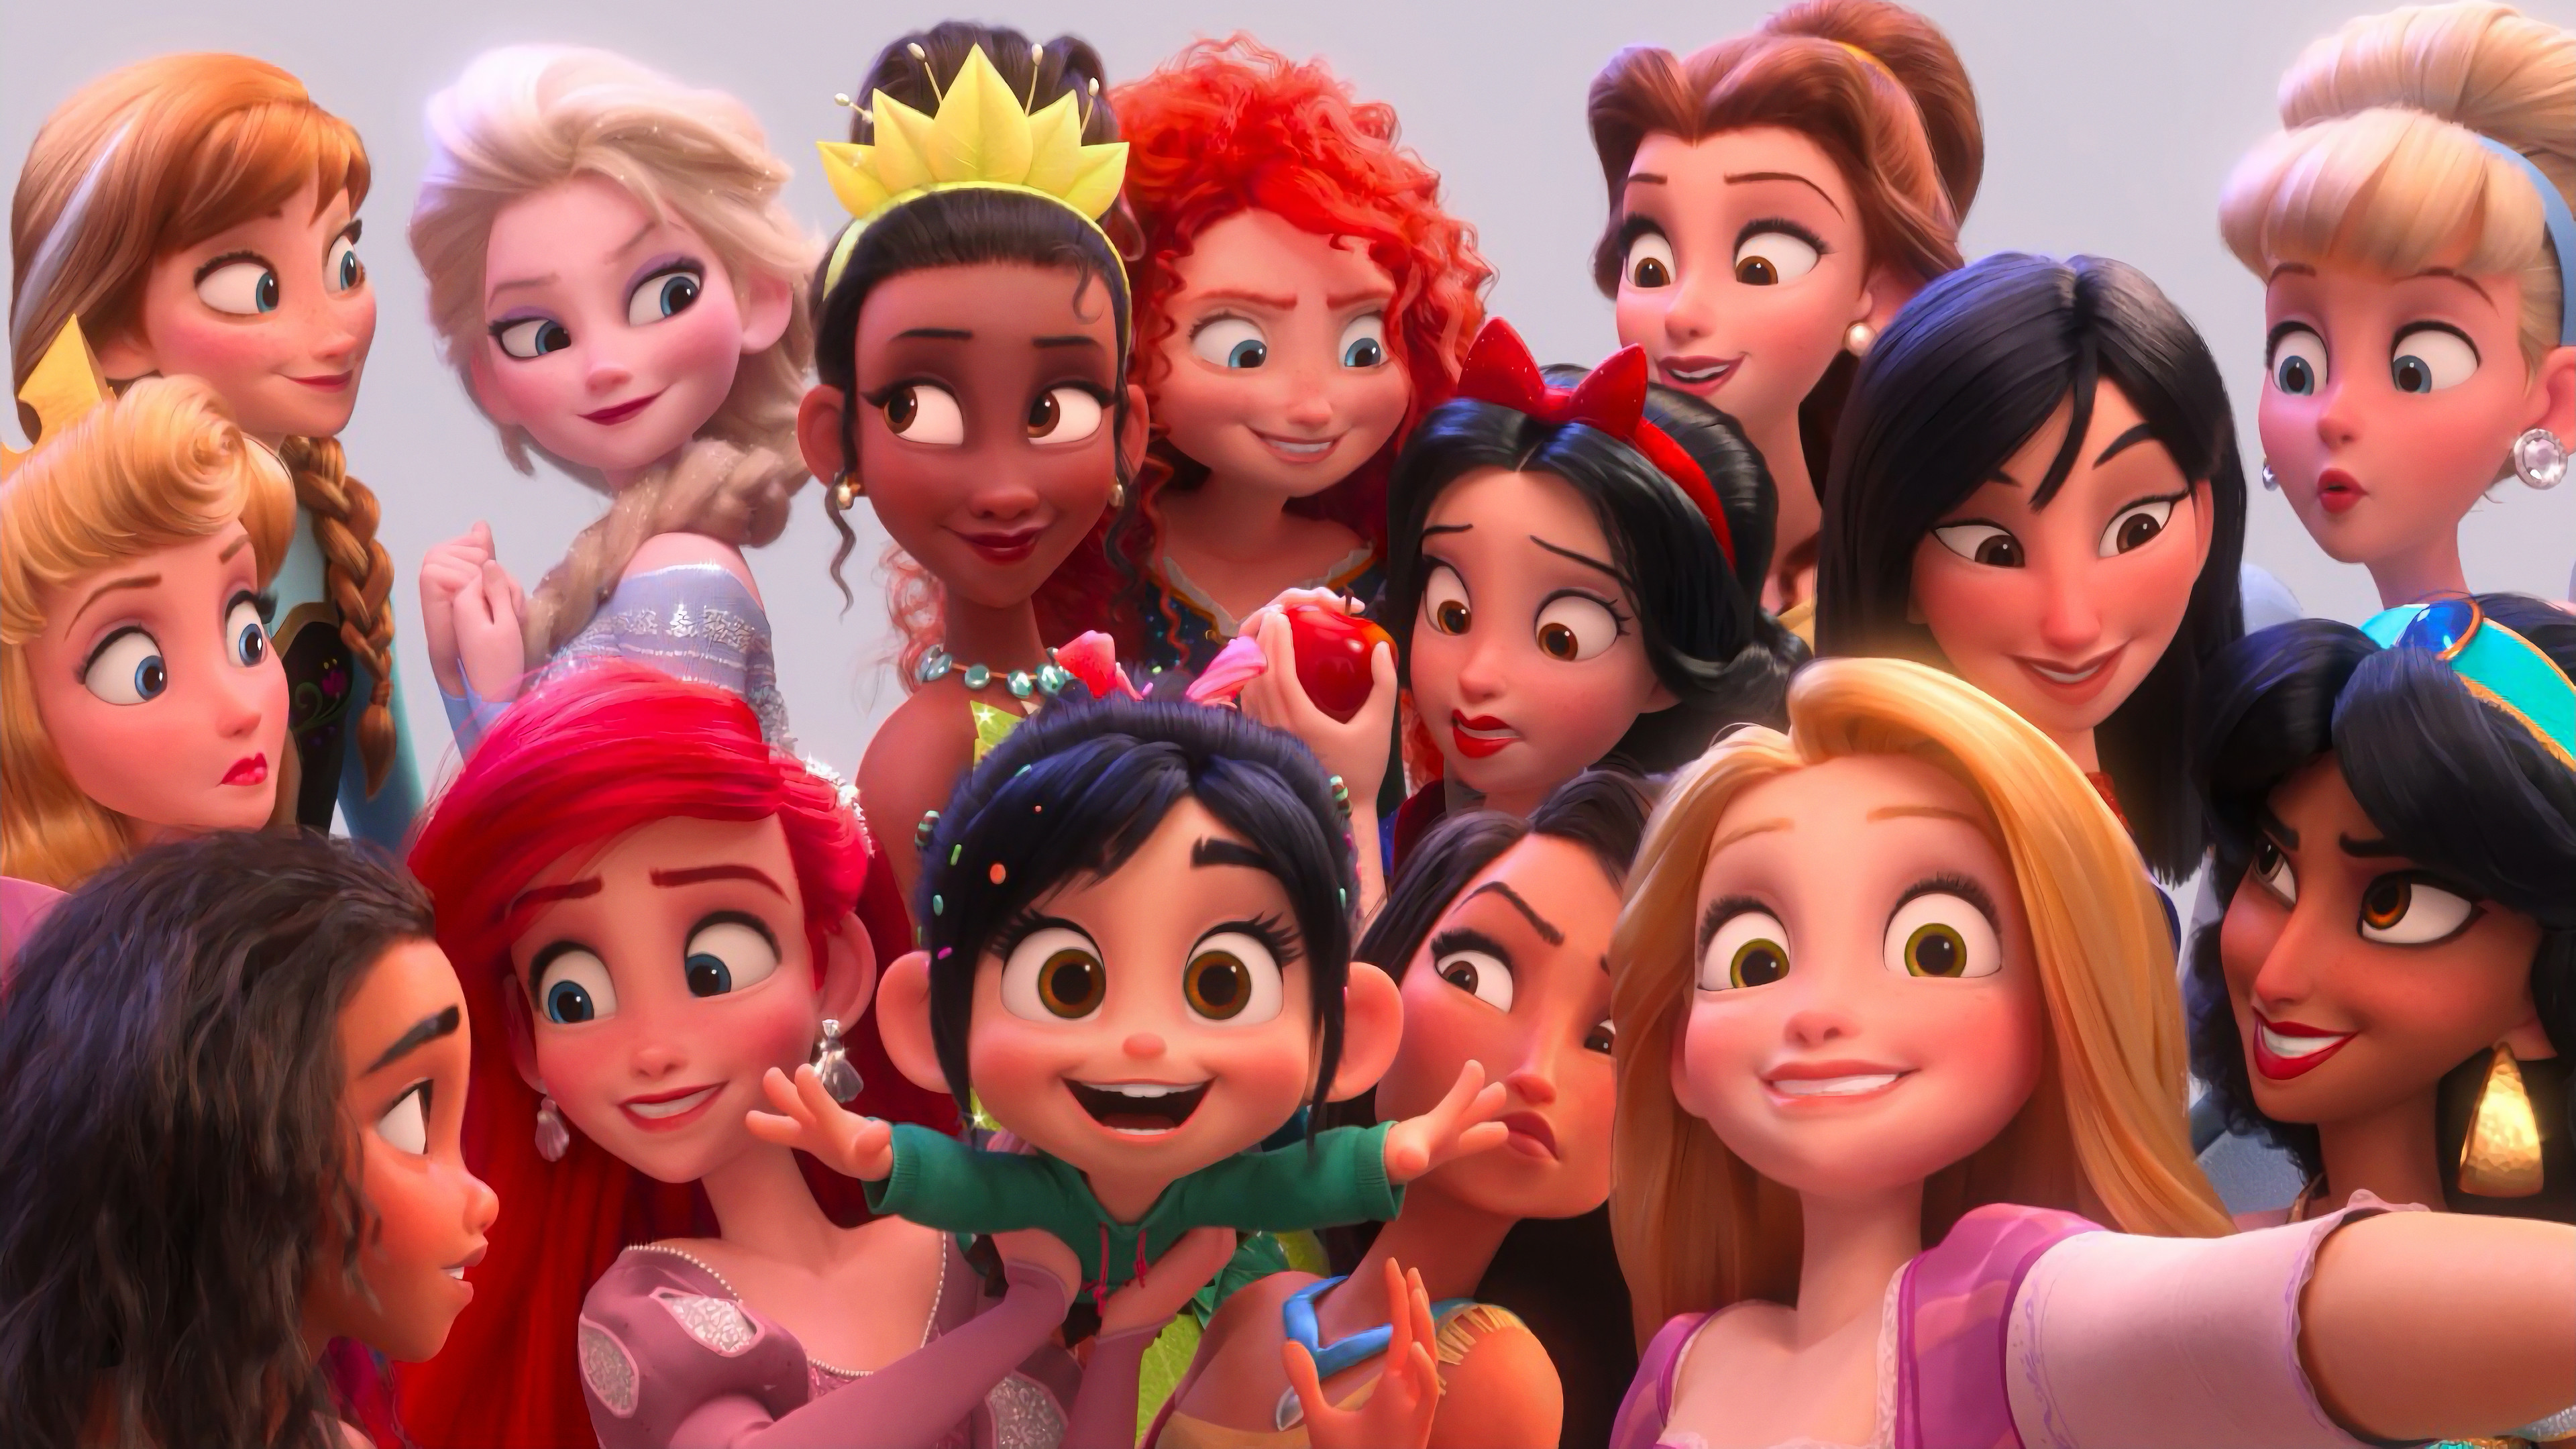 Cute Wallpaper Backgraounds Vanellope Disney Princess Ralph Breaks The Internet Wreck